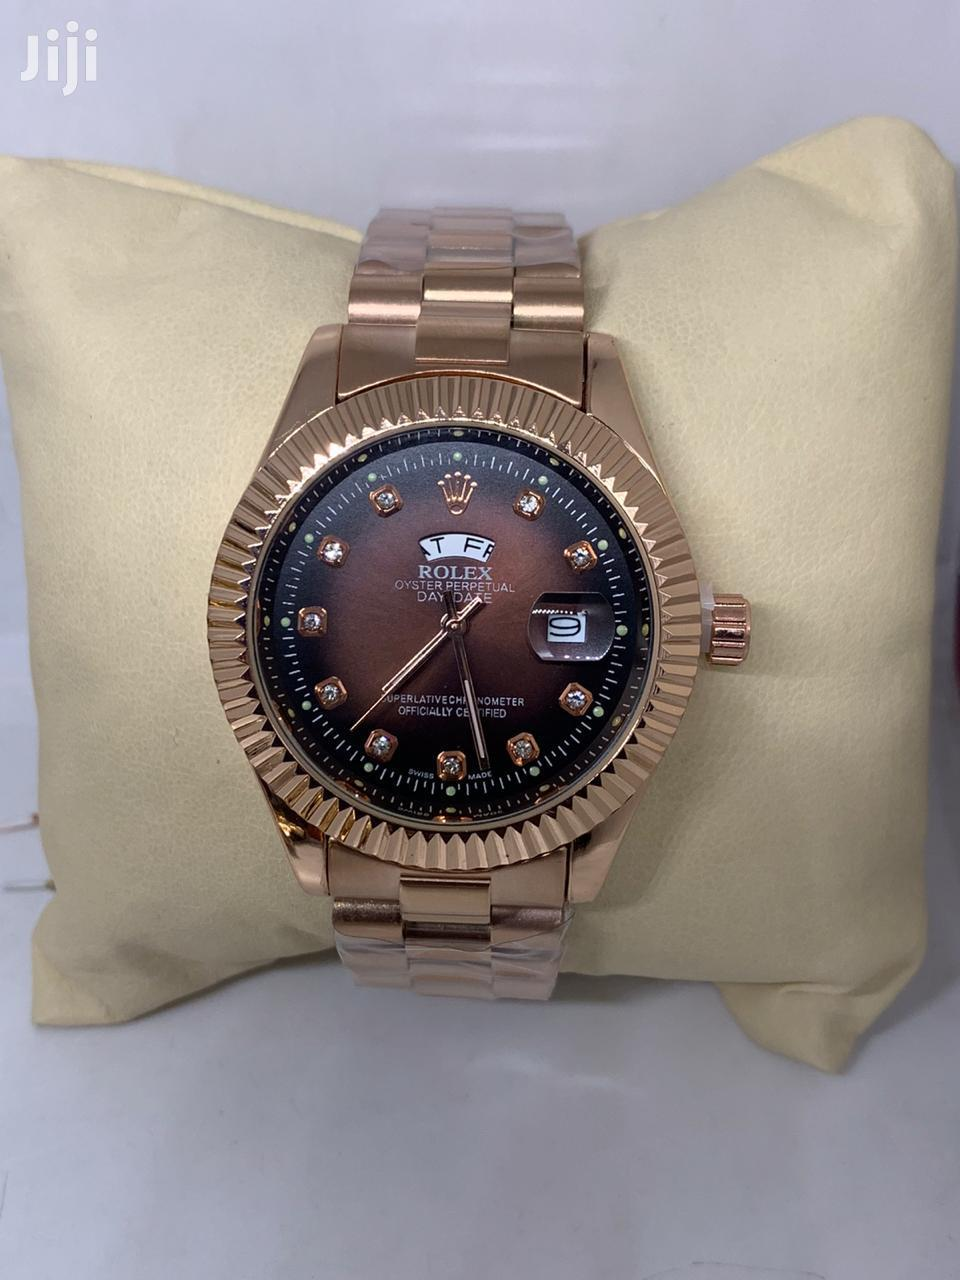 Original Rolex Watches | Watches for sale in Nairobi Central, Nairobi, Kenya